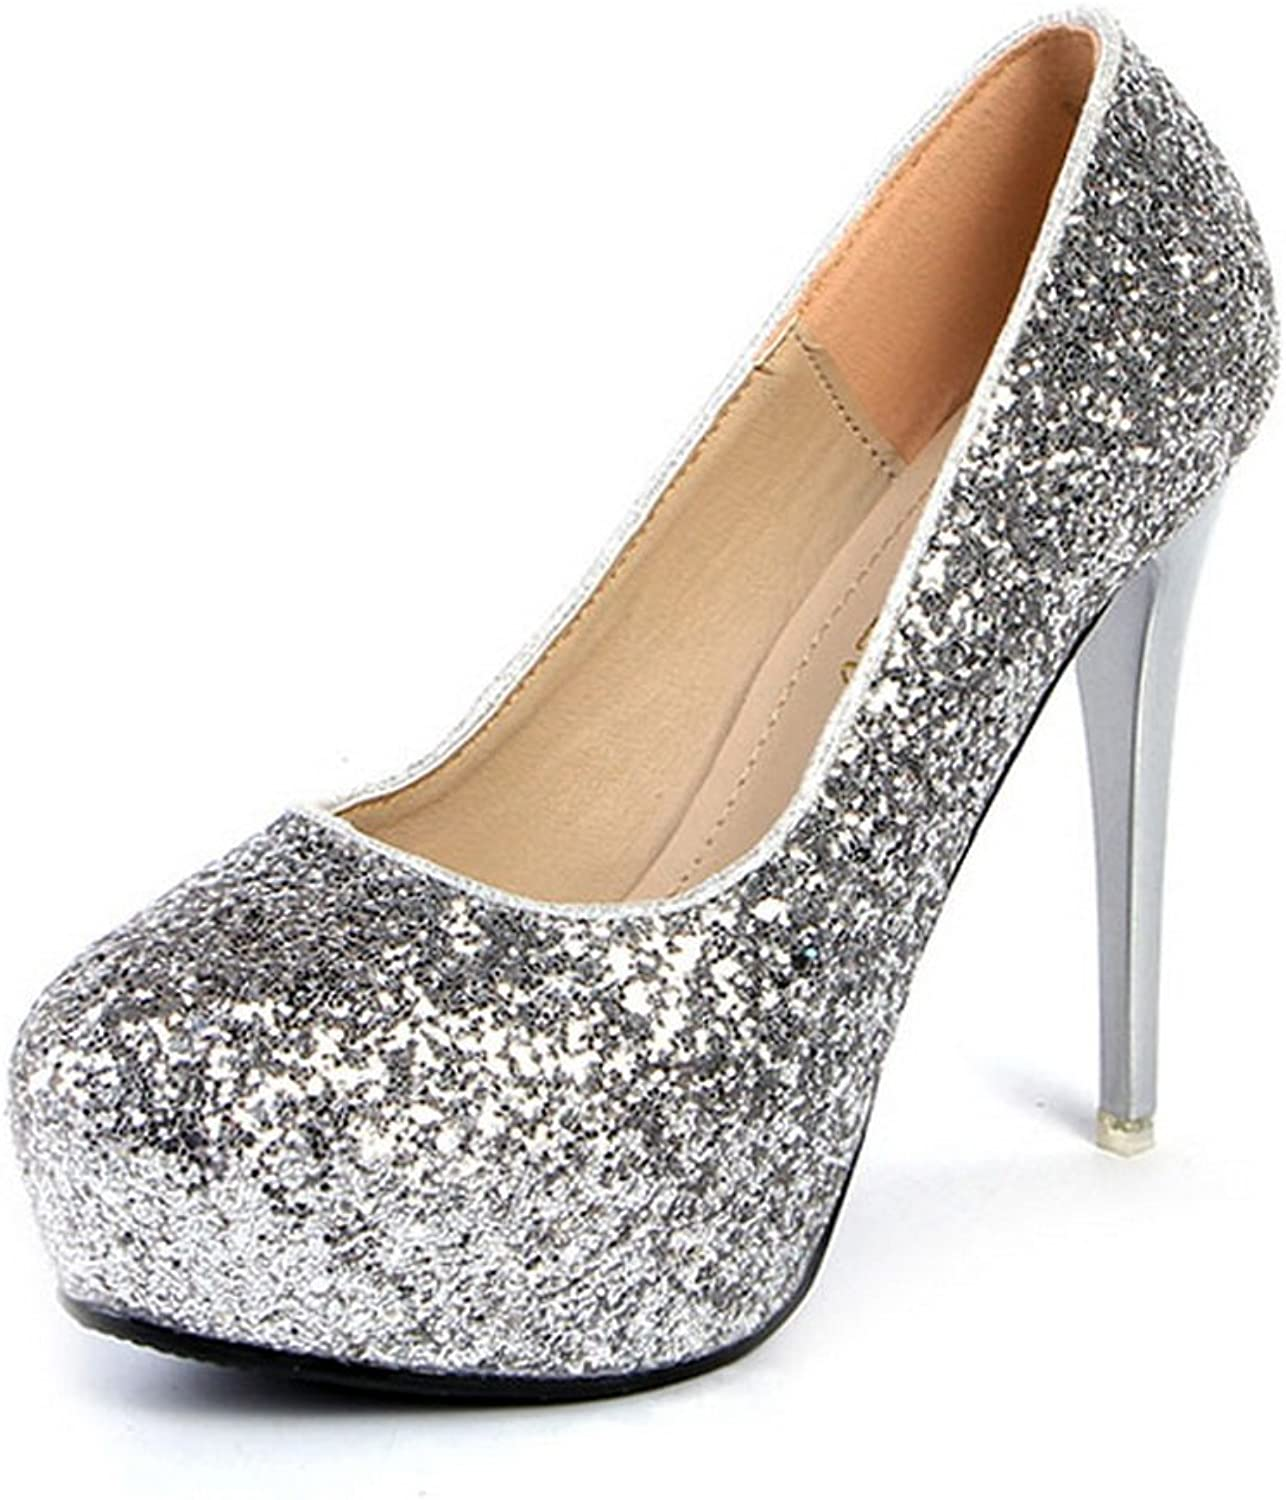 1TO9 Womens Glitter Round-Toe Spikes Stilettos Sequin Pumps shoes